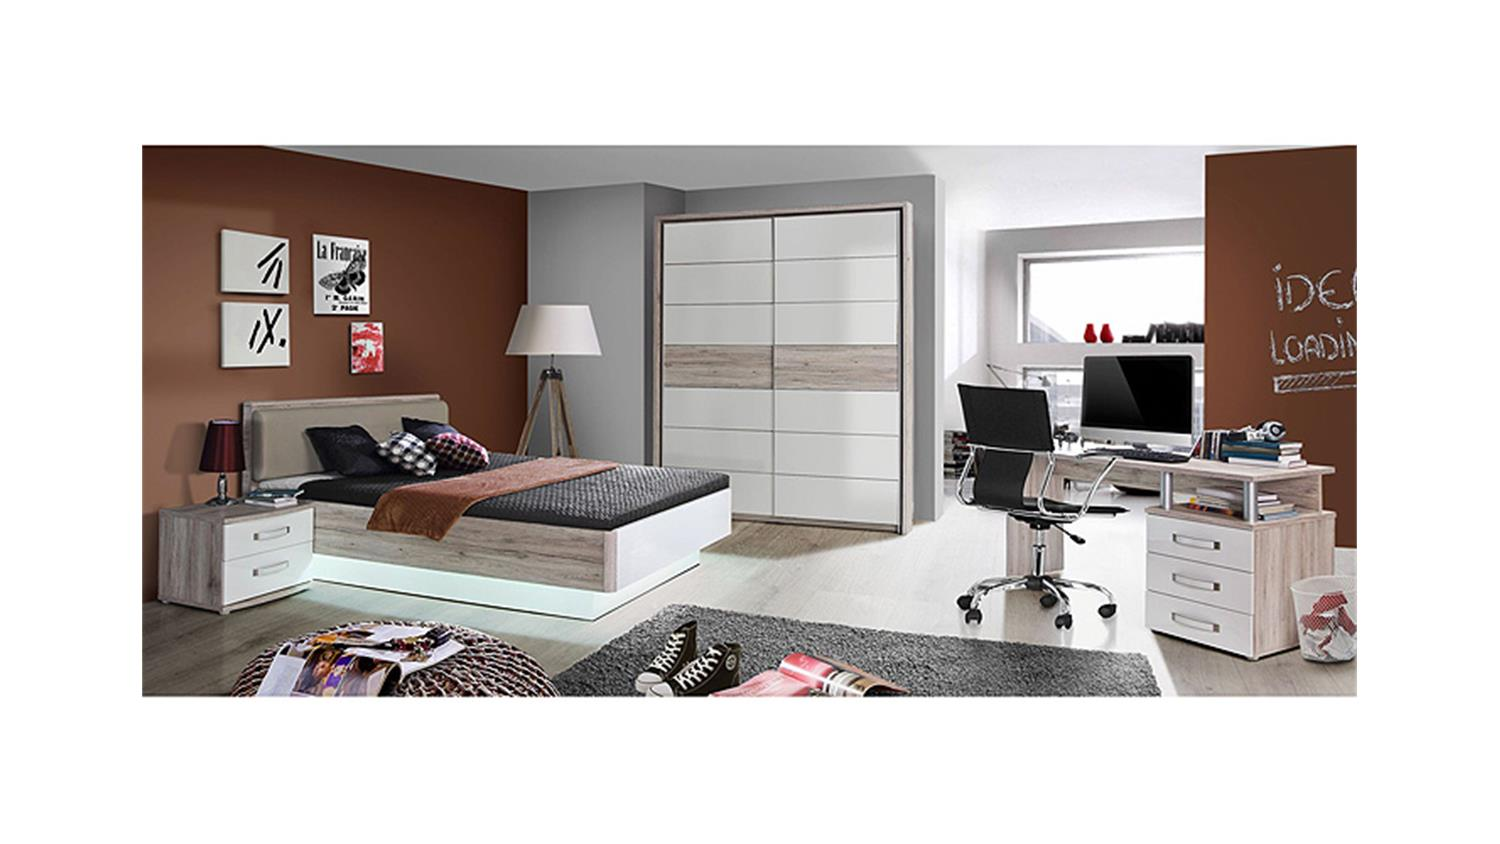 schreibtisch rondino computertisch sandeiche wei hochglanz. Black Bedroom Furniture Sets. Home Design Ideas